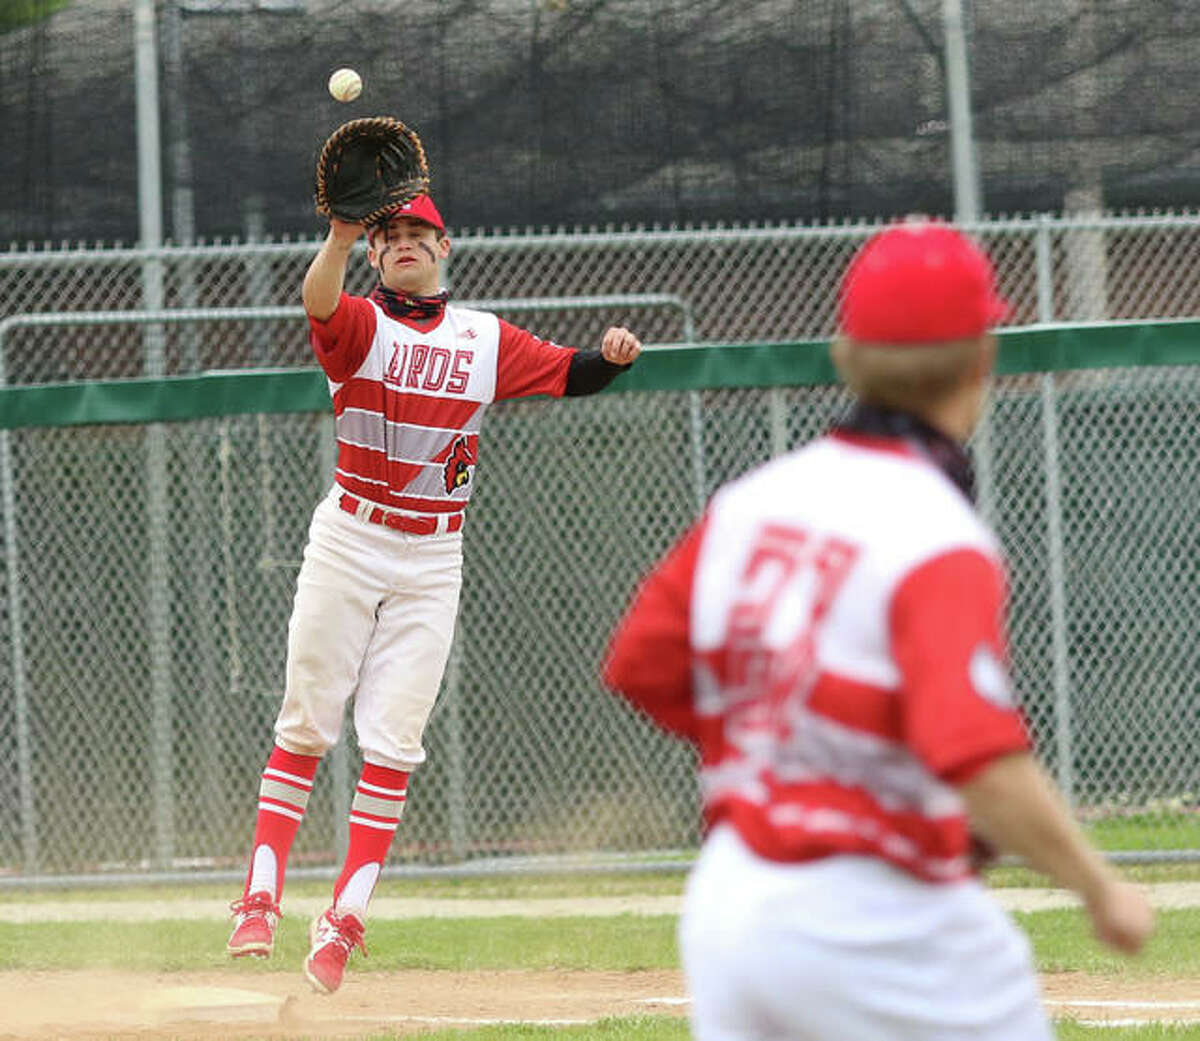 Alton first baseman Owen Macias (left) takes a throw from third baseman Jayden Diaz too late to prevent an infield hit for the Tigers in the fourth inning Saturday at Alton High in Godfrey.